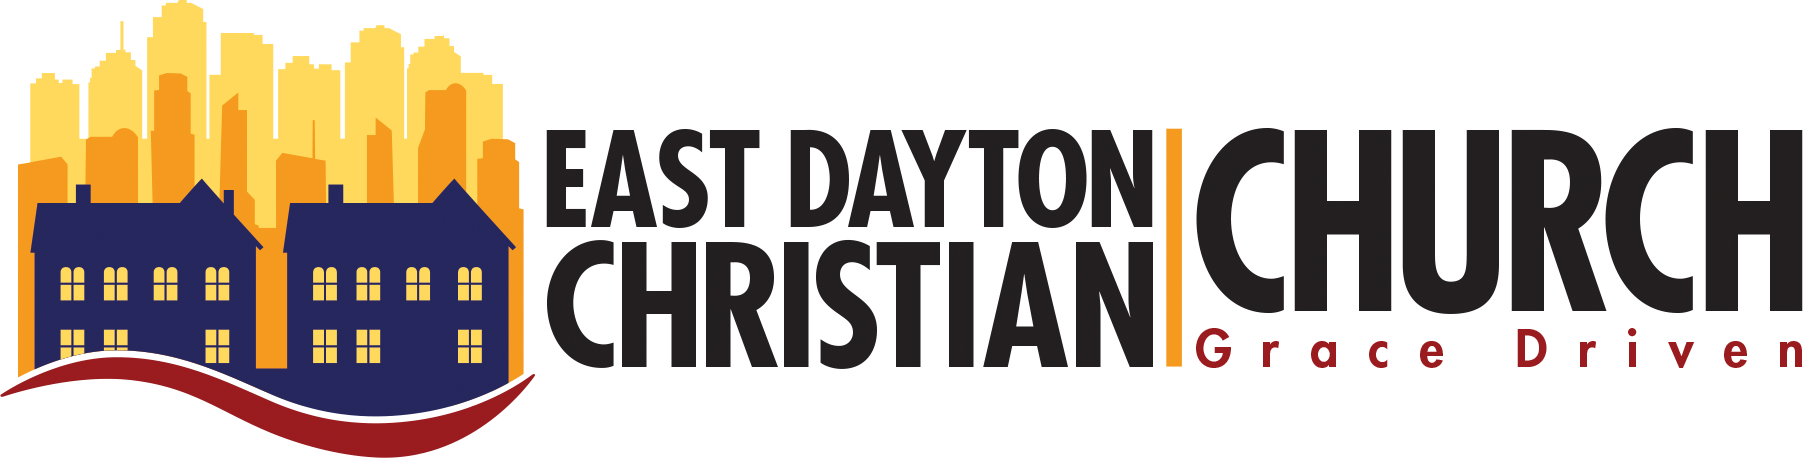 East Dayton Christian Church